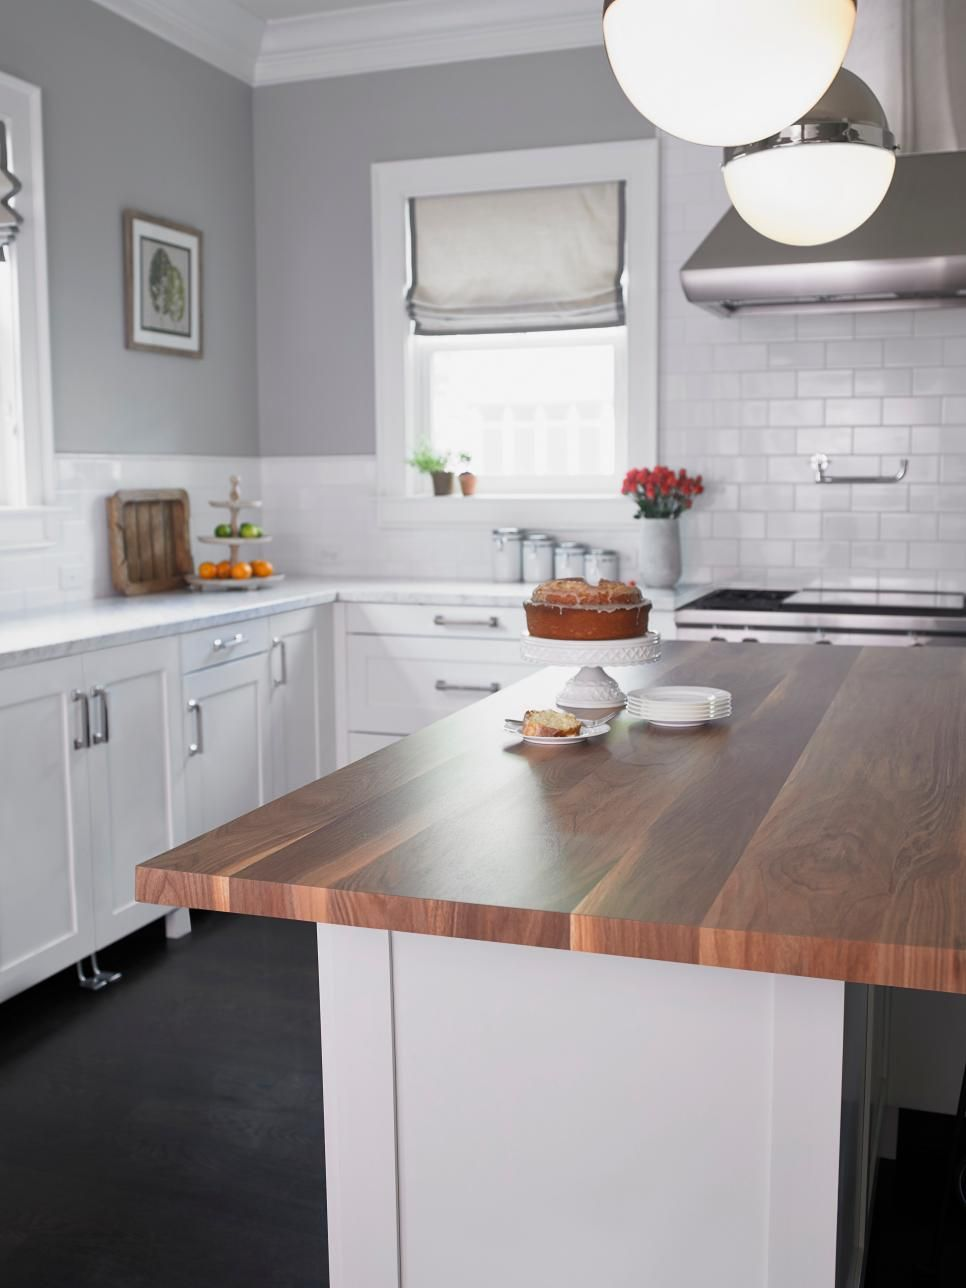 Affordable Kitchen Countertops That Look Like A Million Bucks Budget Kitchen Remodel Cheap Kitchen Countertops Replacing Kitchen Countertops